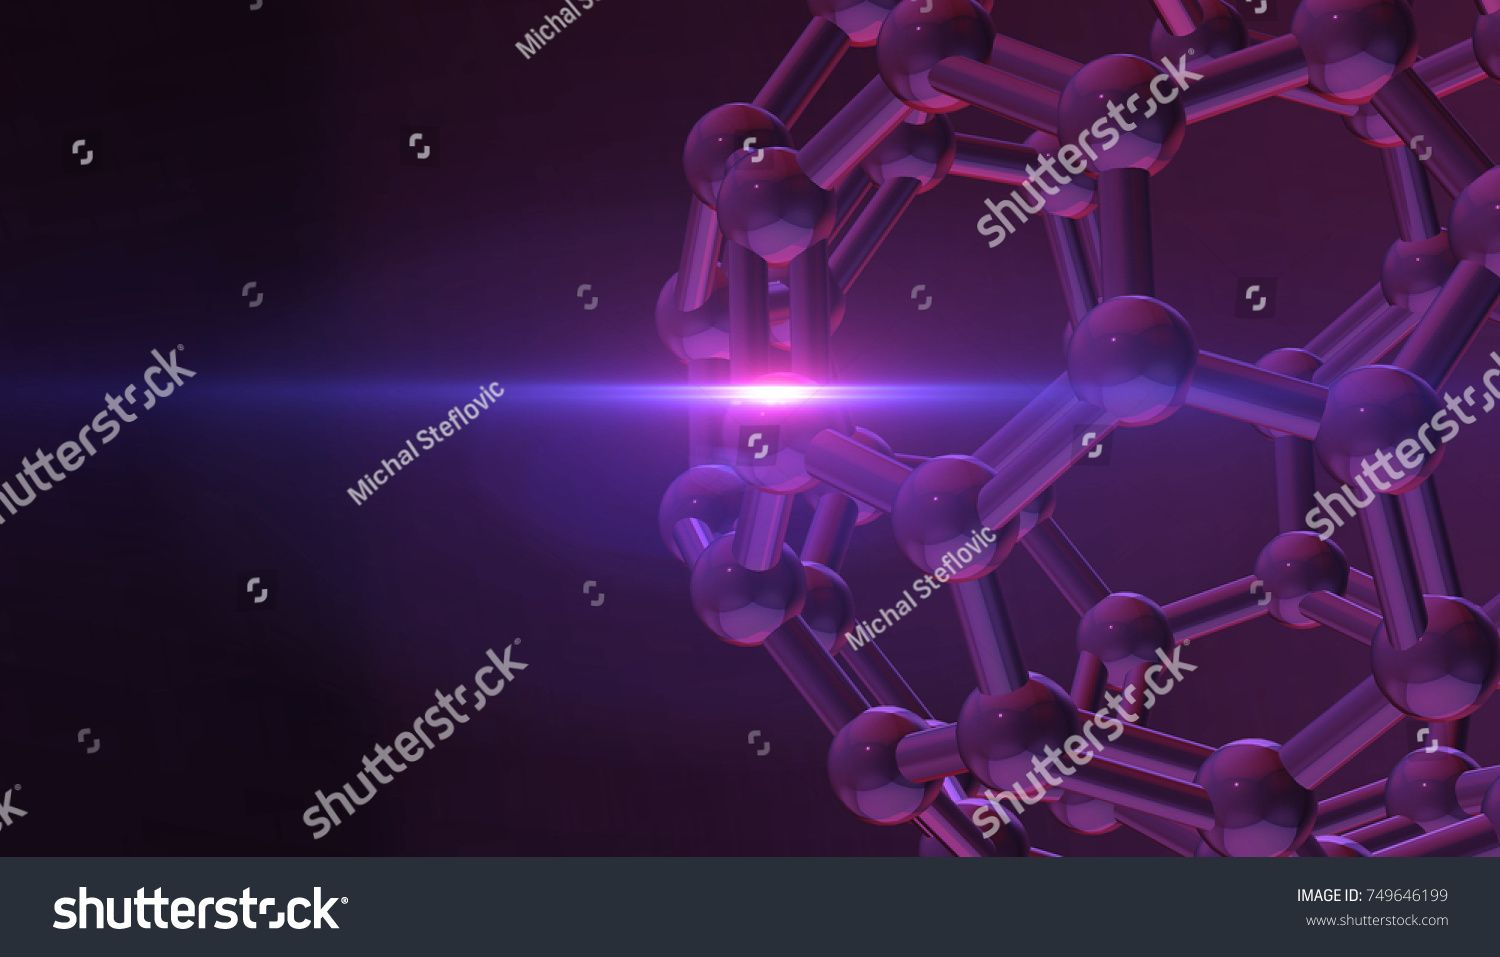 DNA in color background and various material, 3d render illustration #Ad , #Sponsored, #background#color#DNA#illustration